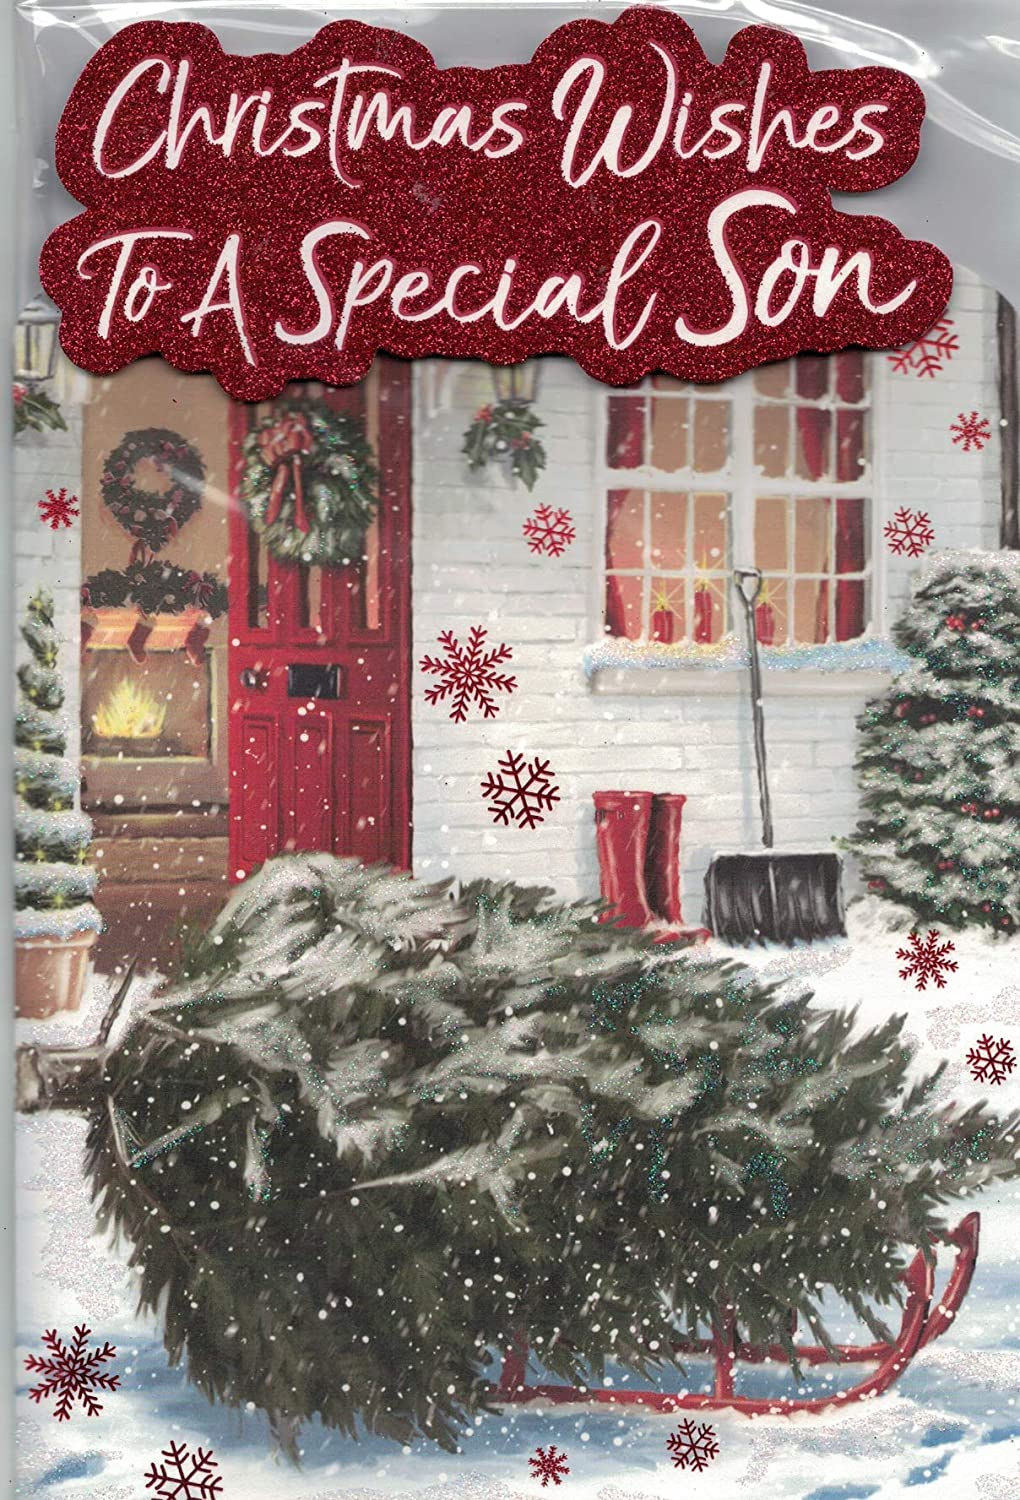 Special Son Christmas Card****Traditional Xmas Tree***9 X 6 INCHES**